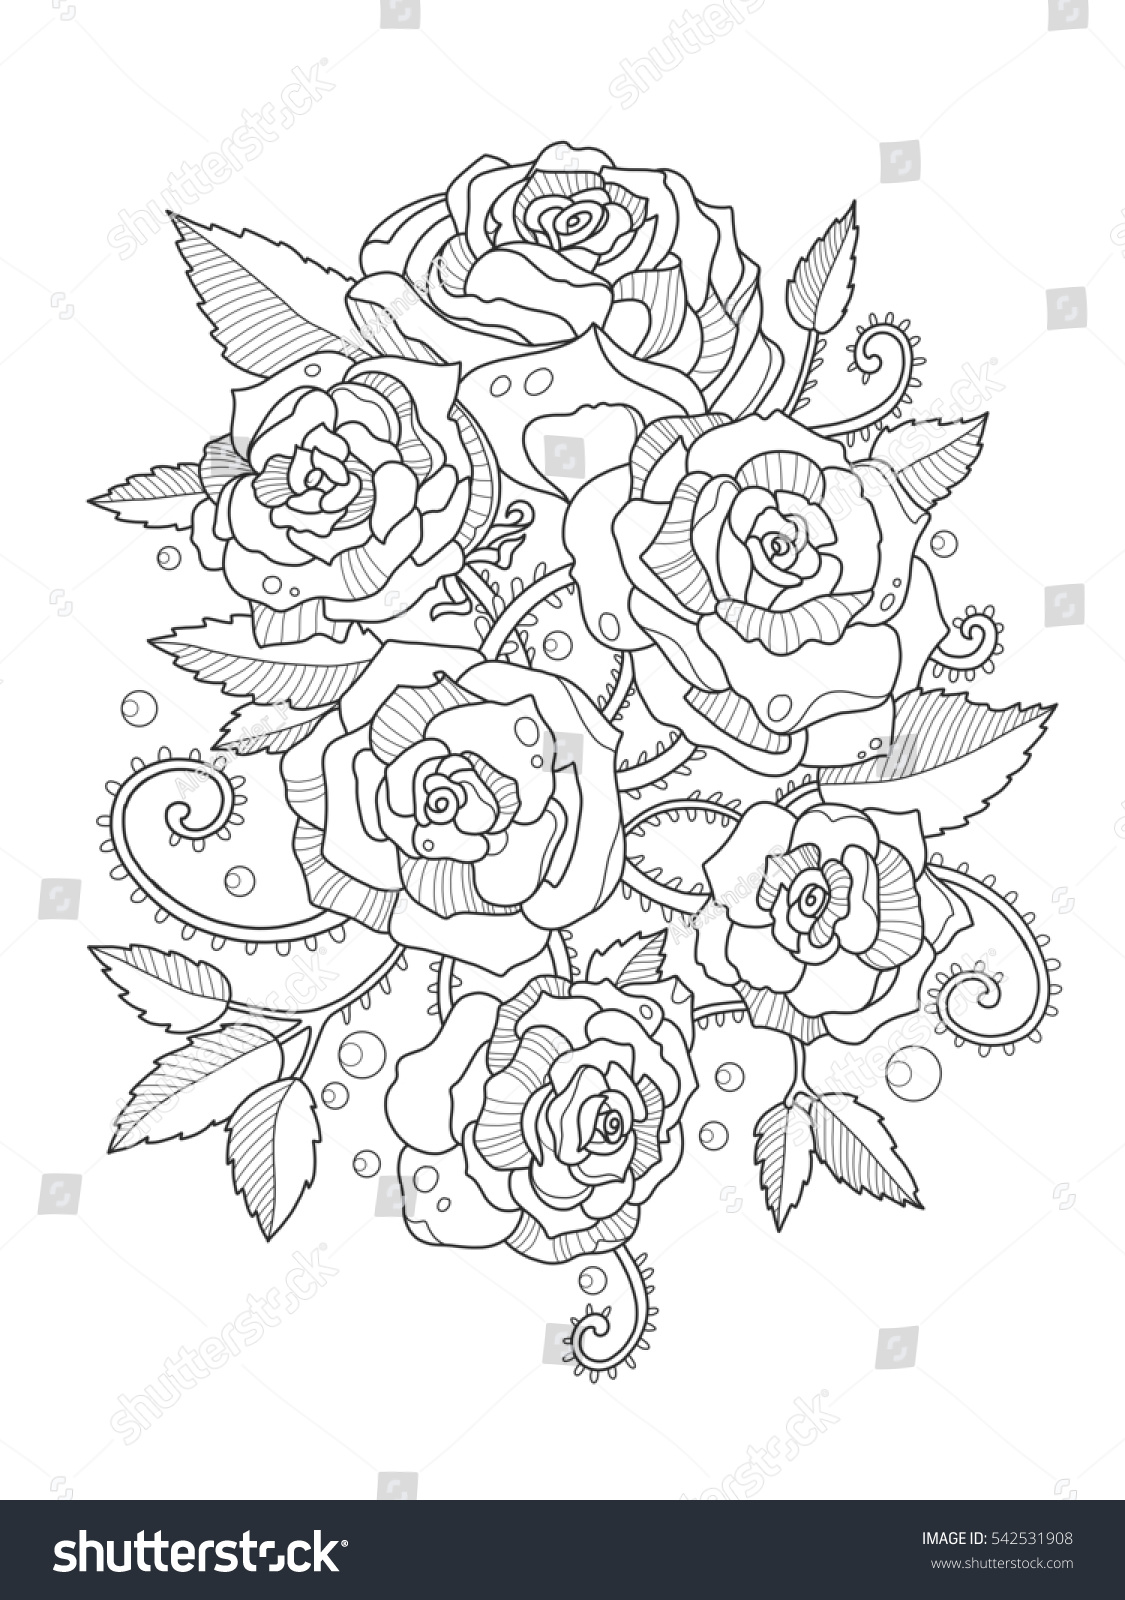 Anti stress colouring book asda - Rose Flower Coloring Book For Adults Raster Illustration Anti Stress Coloring For Adult